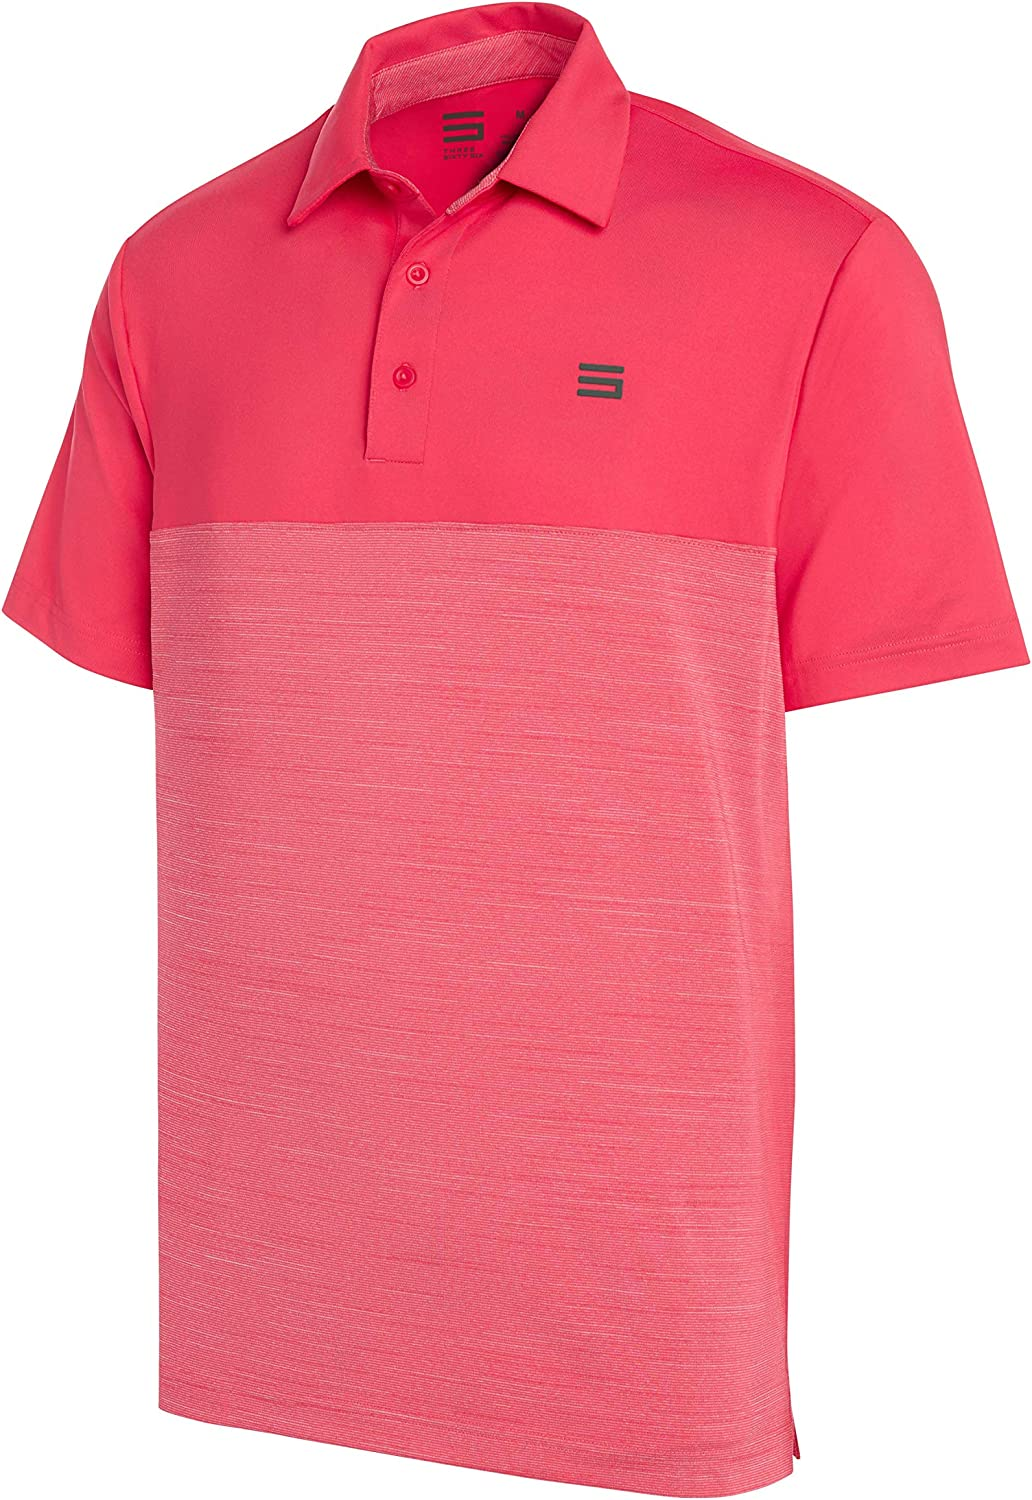 Perfect Collection Button Neck Short Sleeve Polo Top Shirt Pale Pink